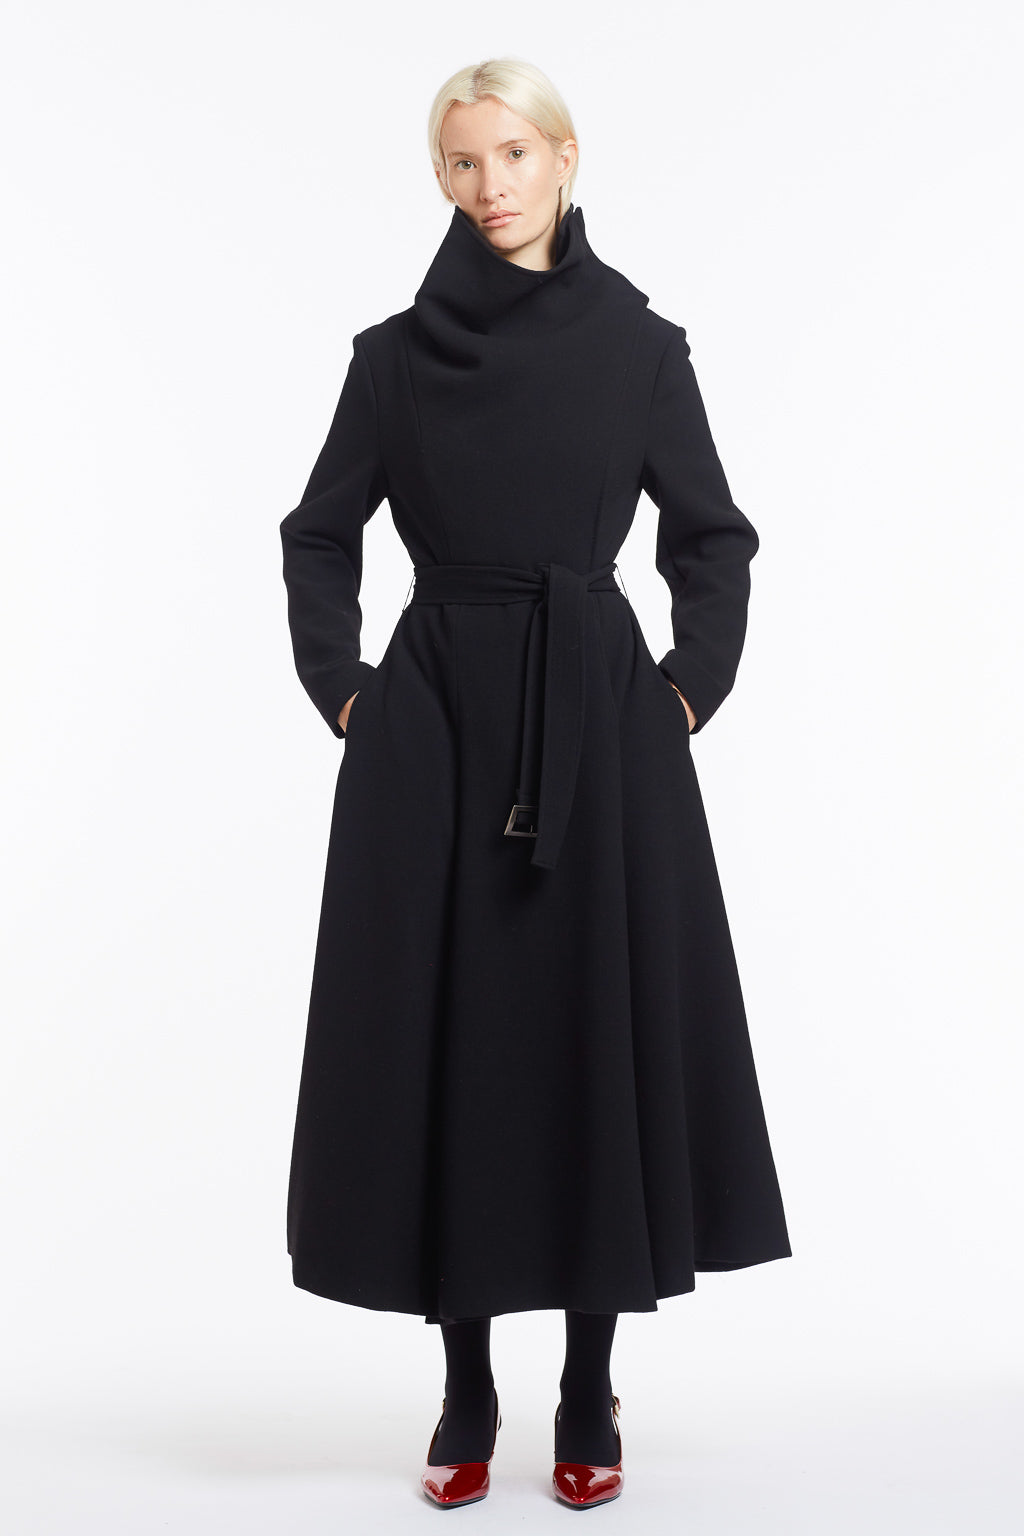 J018 Coco Cowl Neck Full-Length Flared Coat in Black Wool - Front